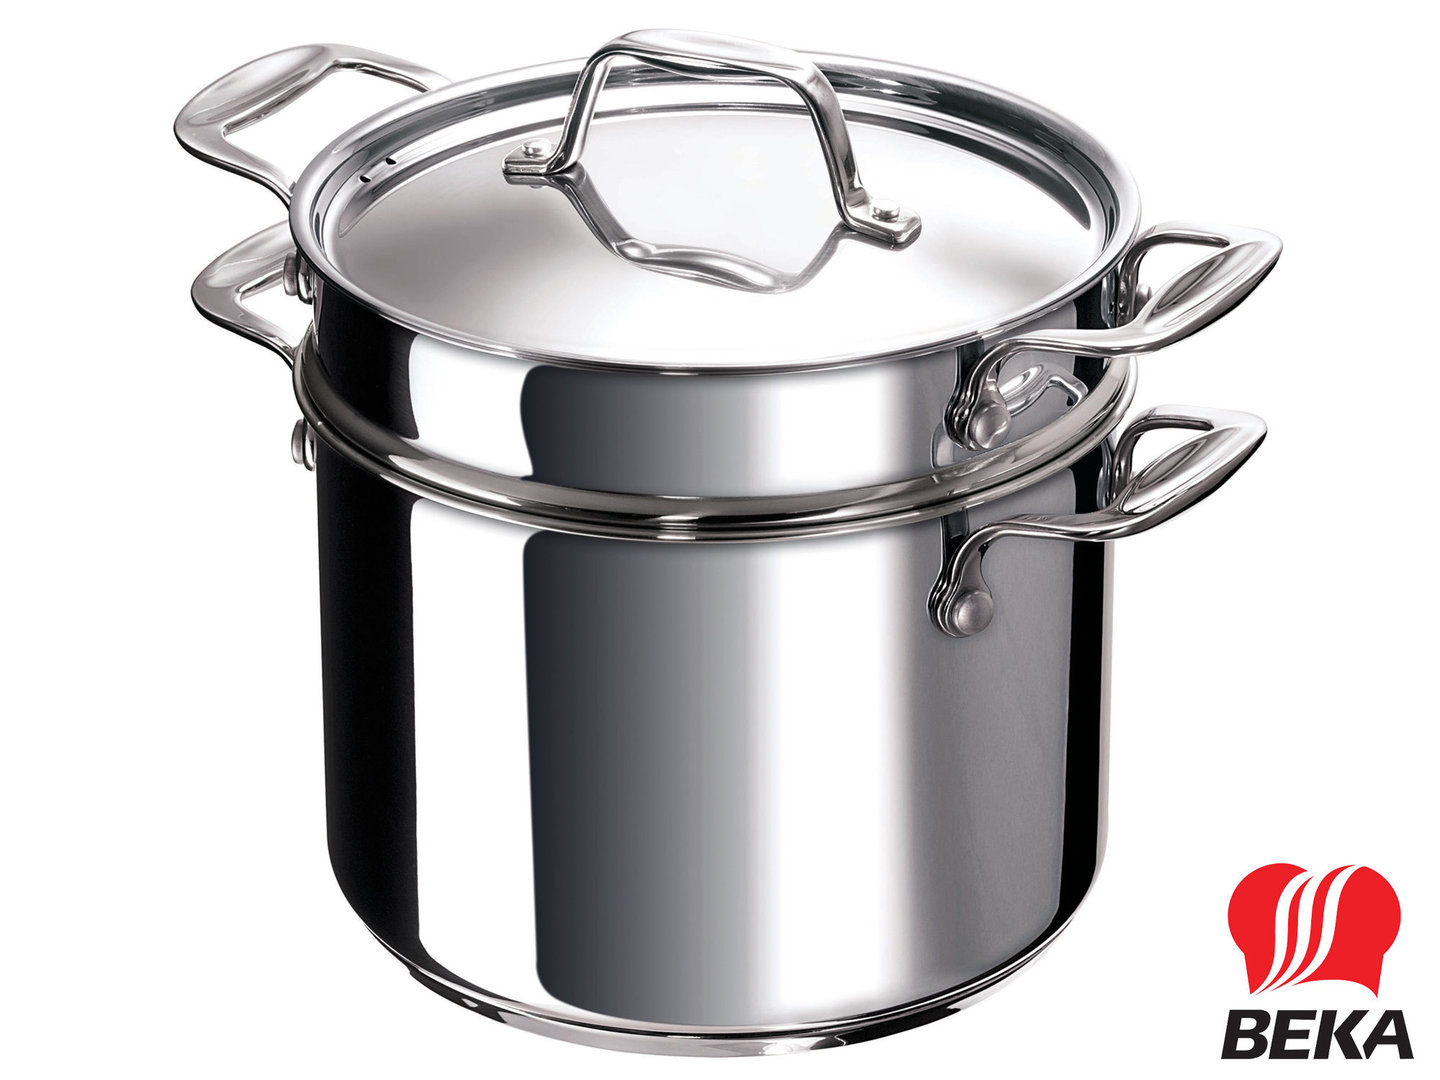 BEKA pasta cooker CHEF PASTA FUN 24 cm stainless steel induction